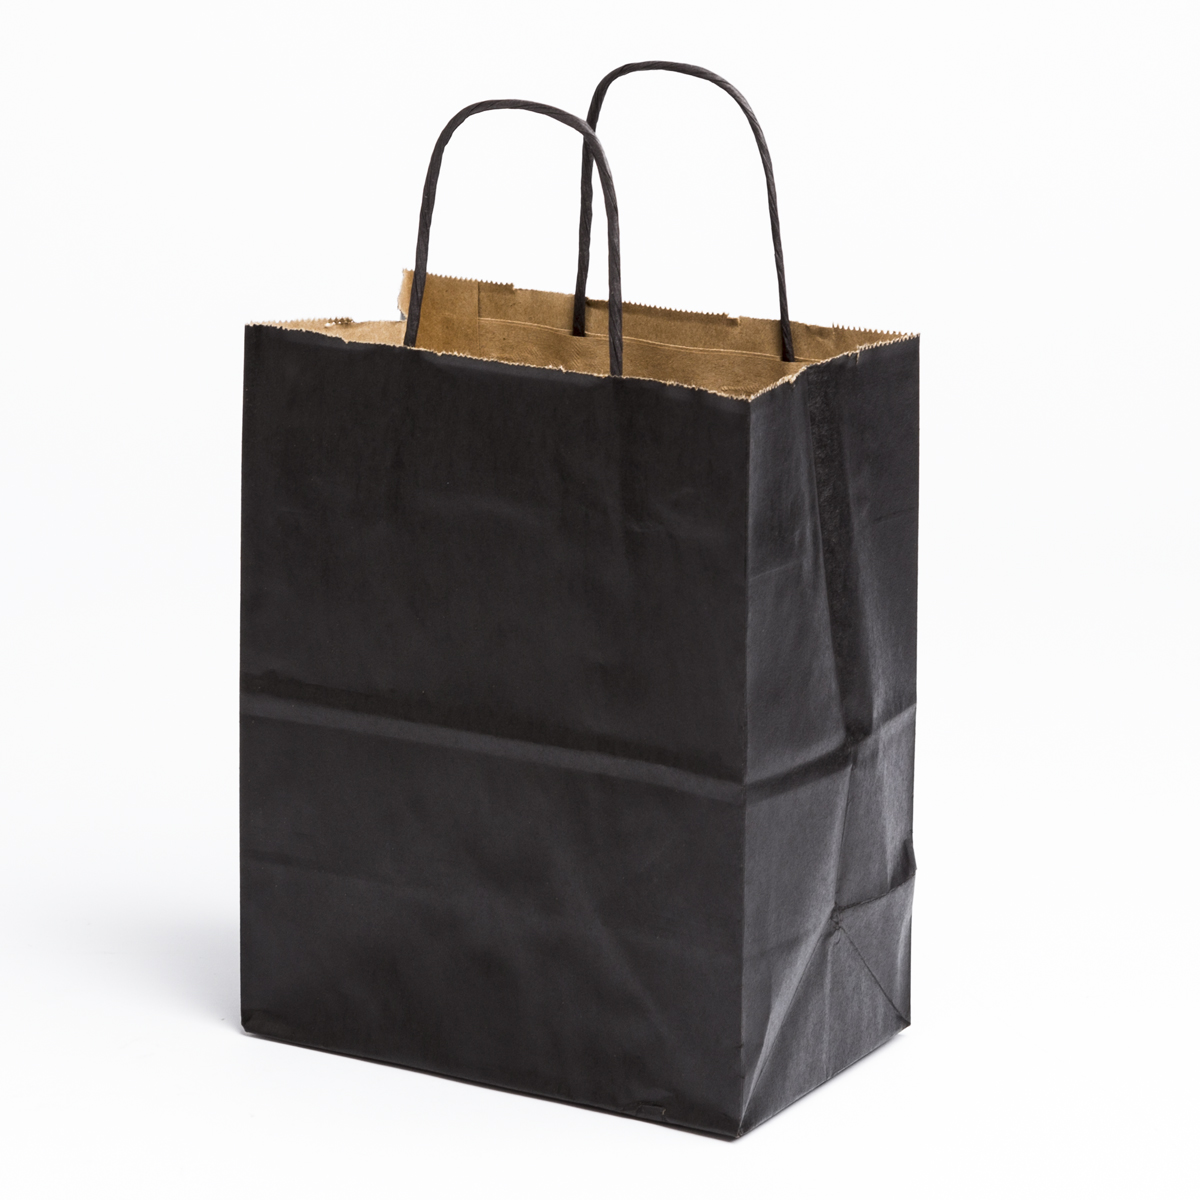 Find great deals on eBay for black shopping bag. Shop with confidence.